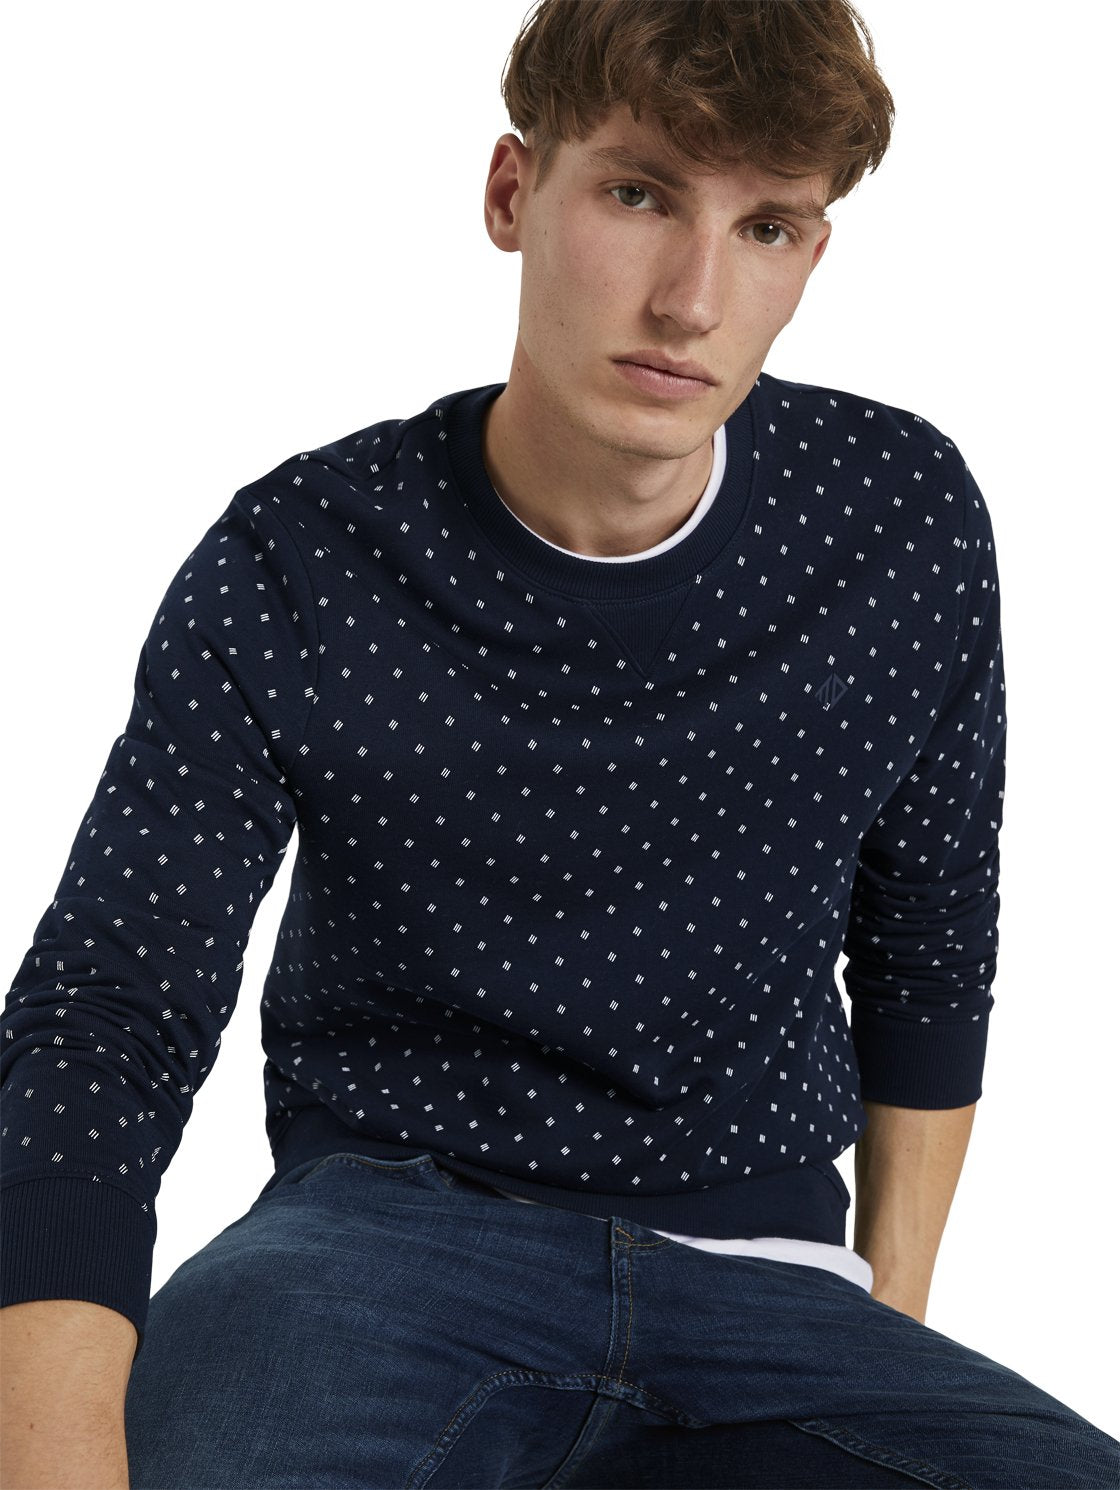 Tom Tailor 1021341 men's sweater navy